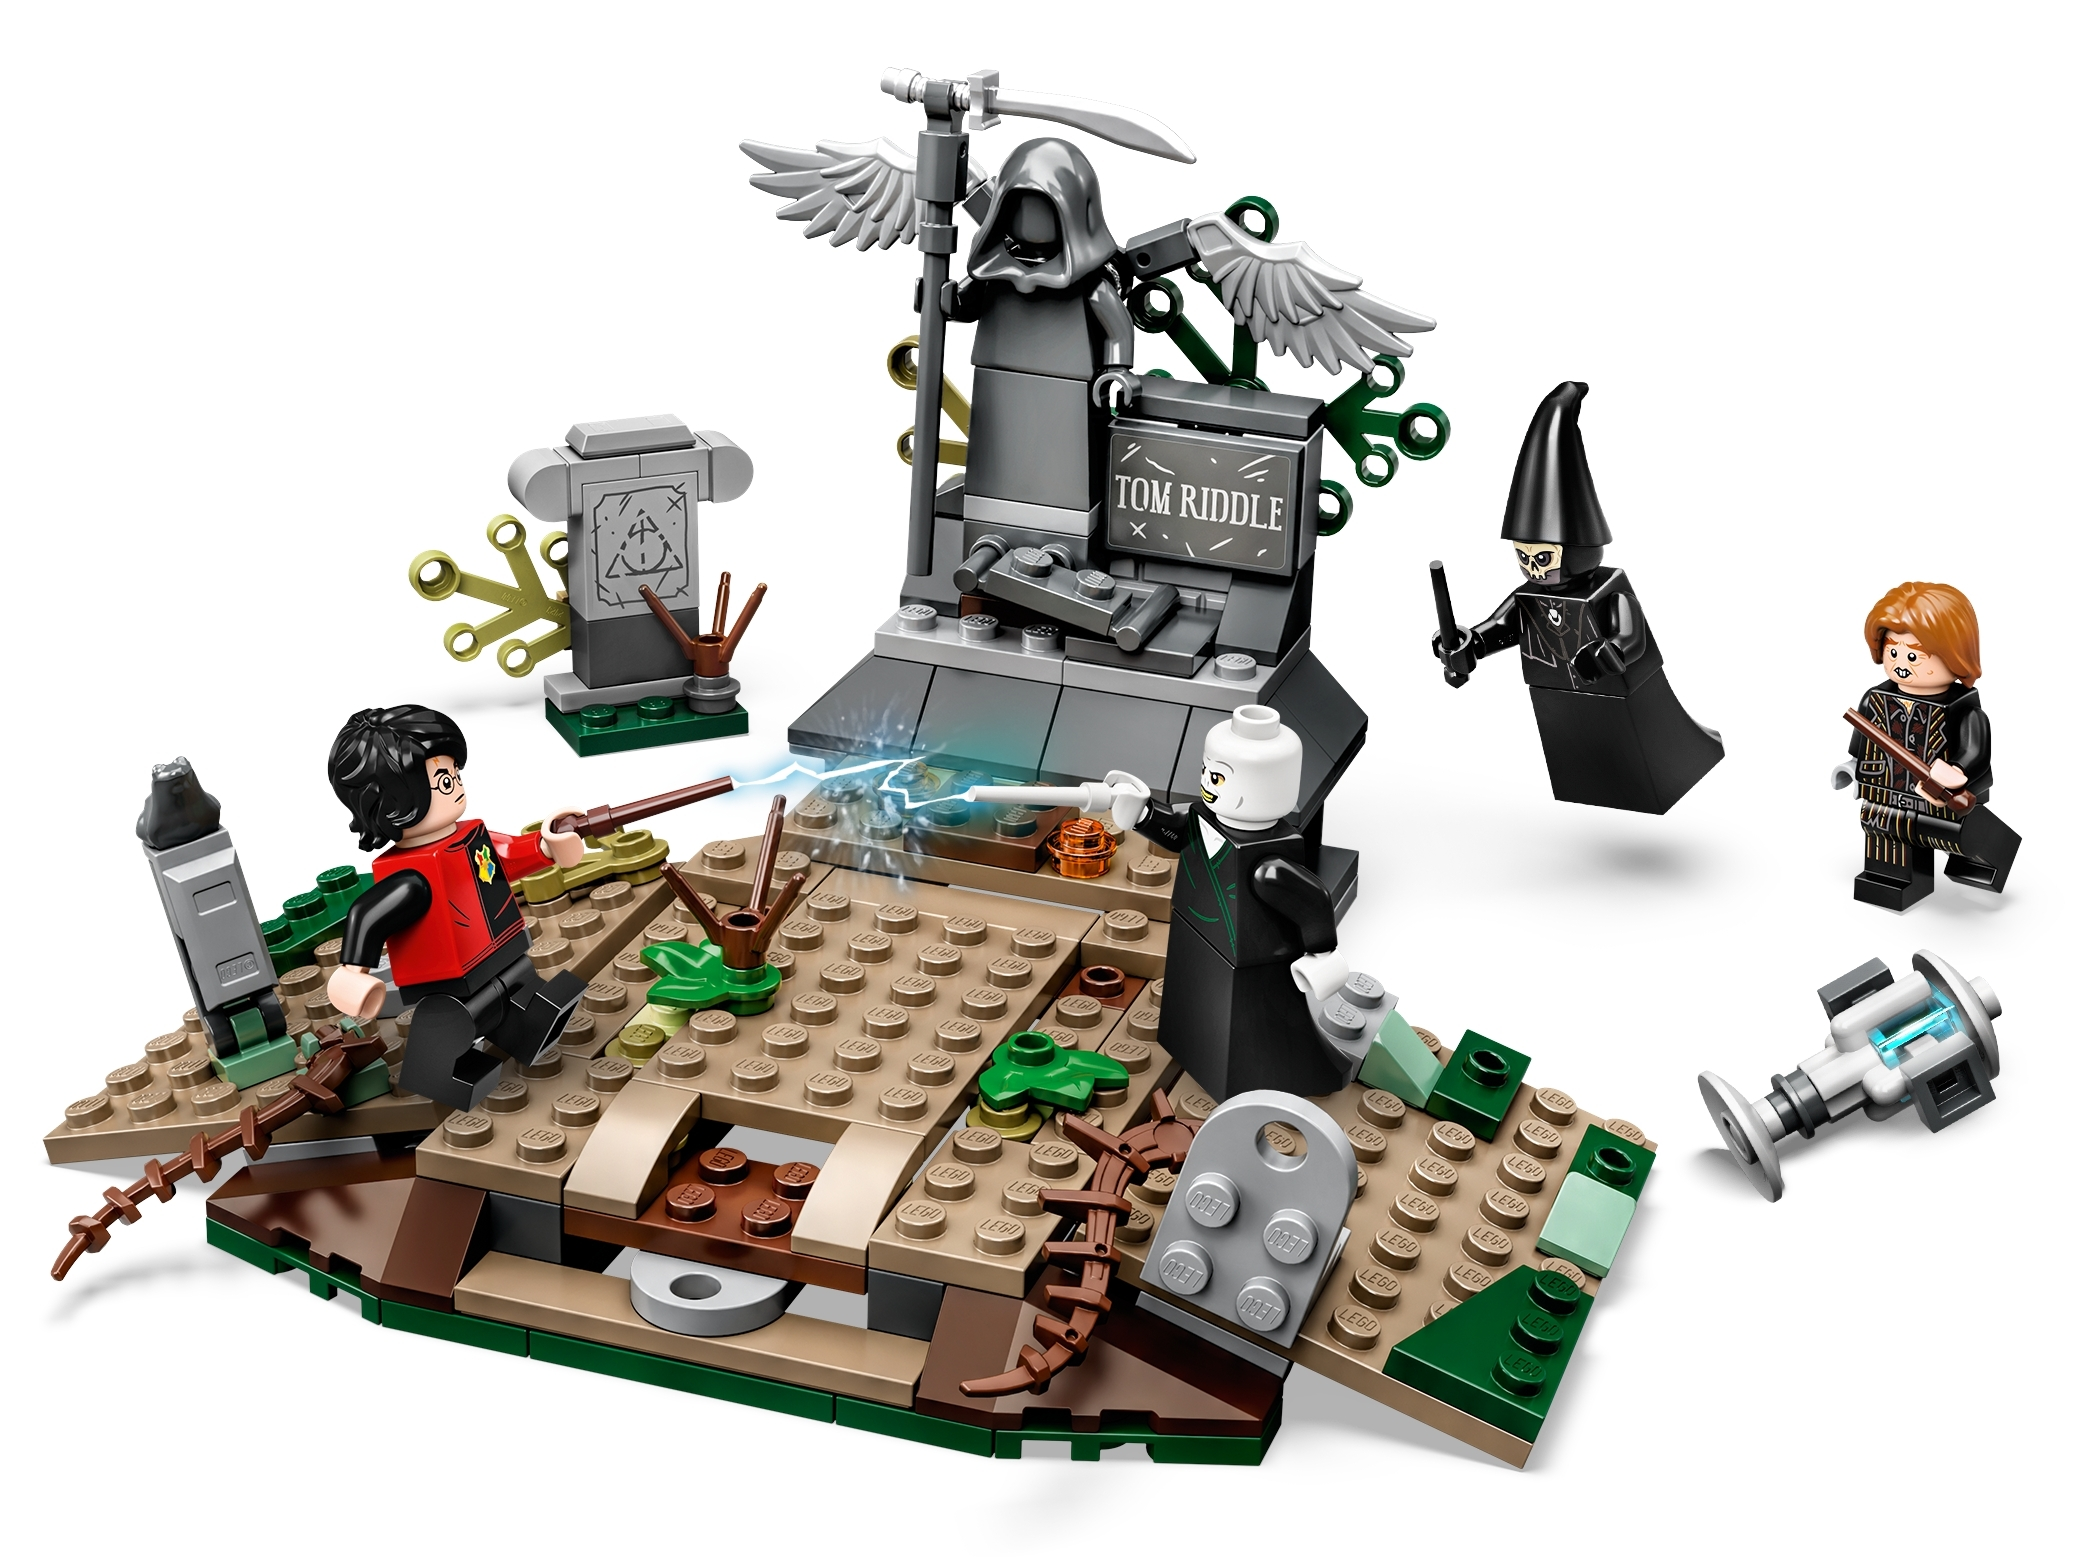 The Rise of Voldemort 75965 LEGO Harry Potter